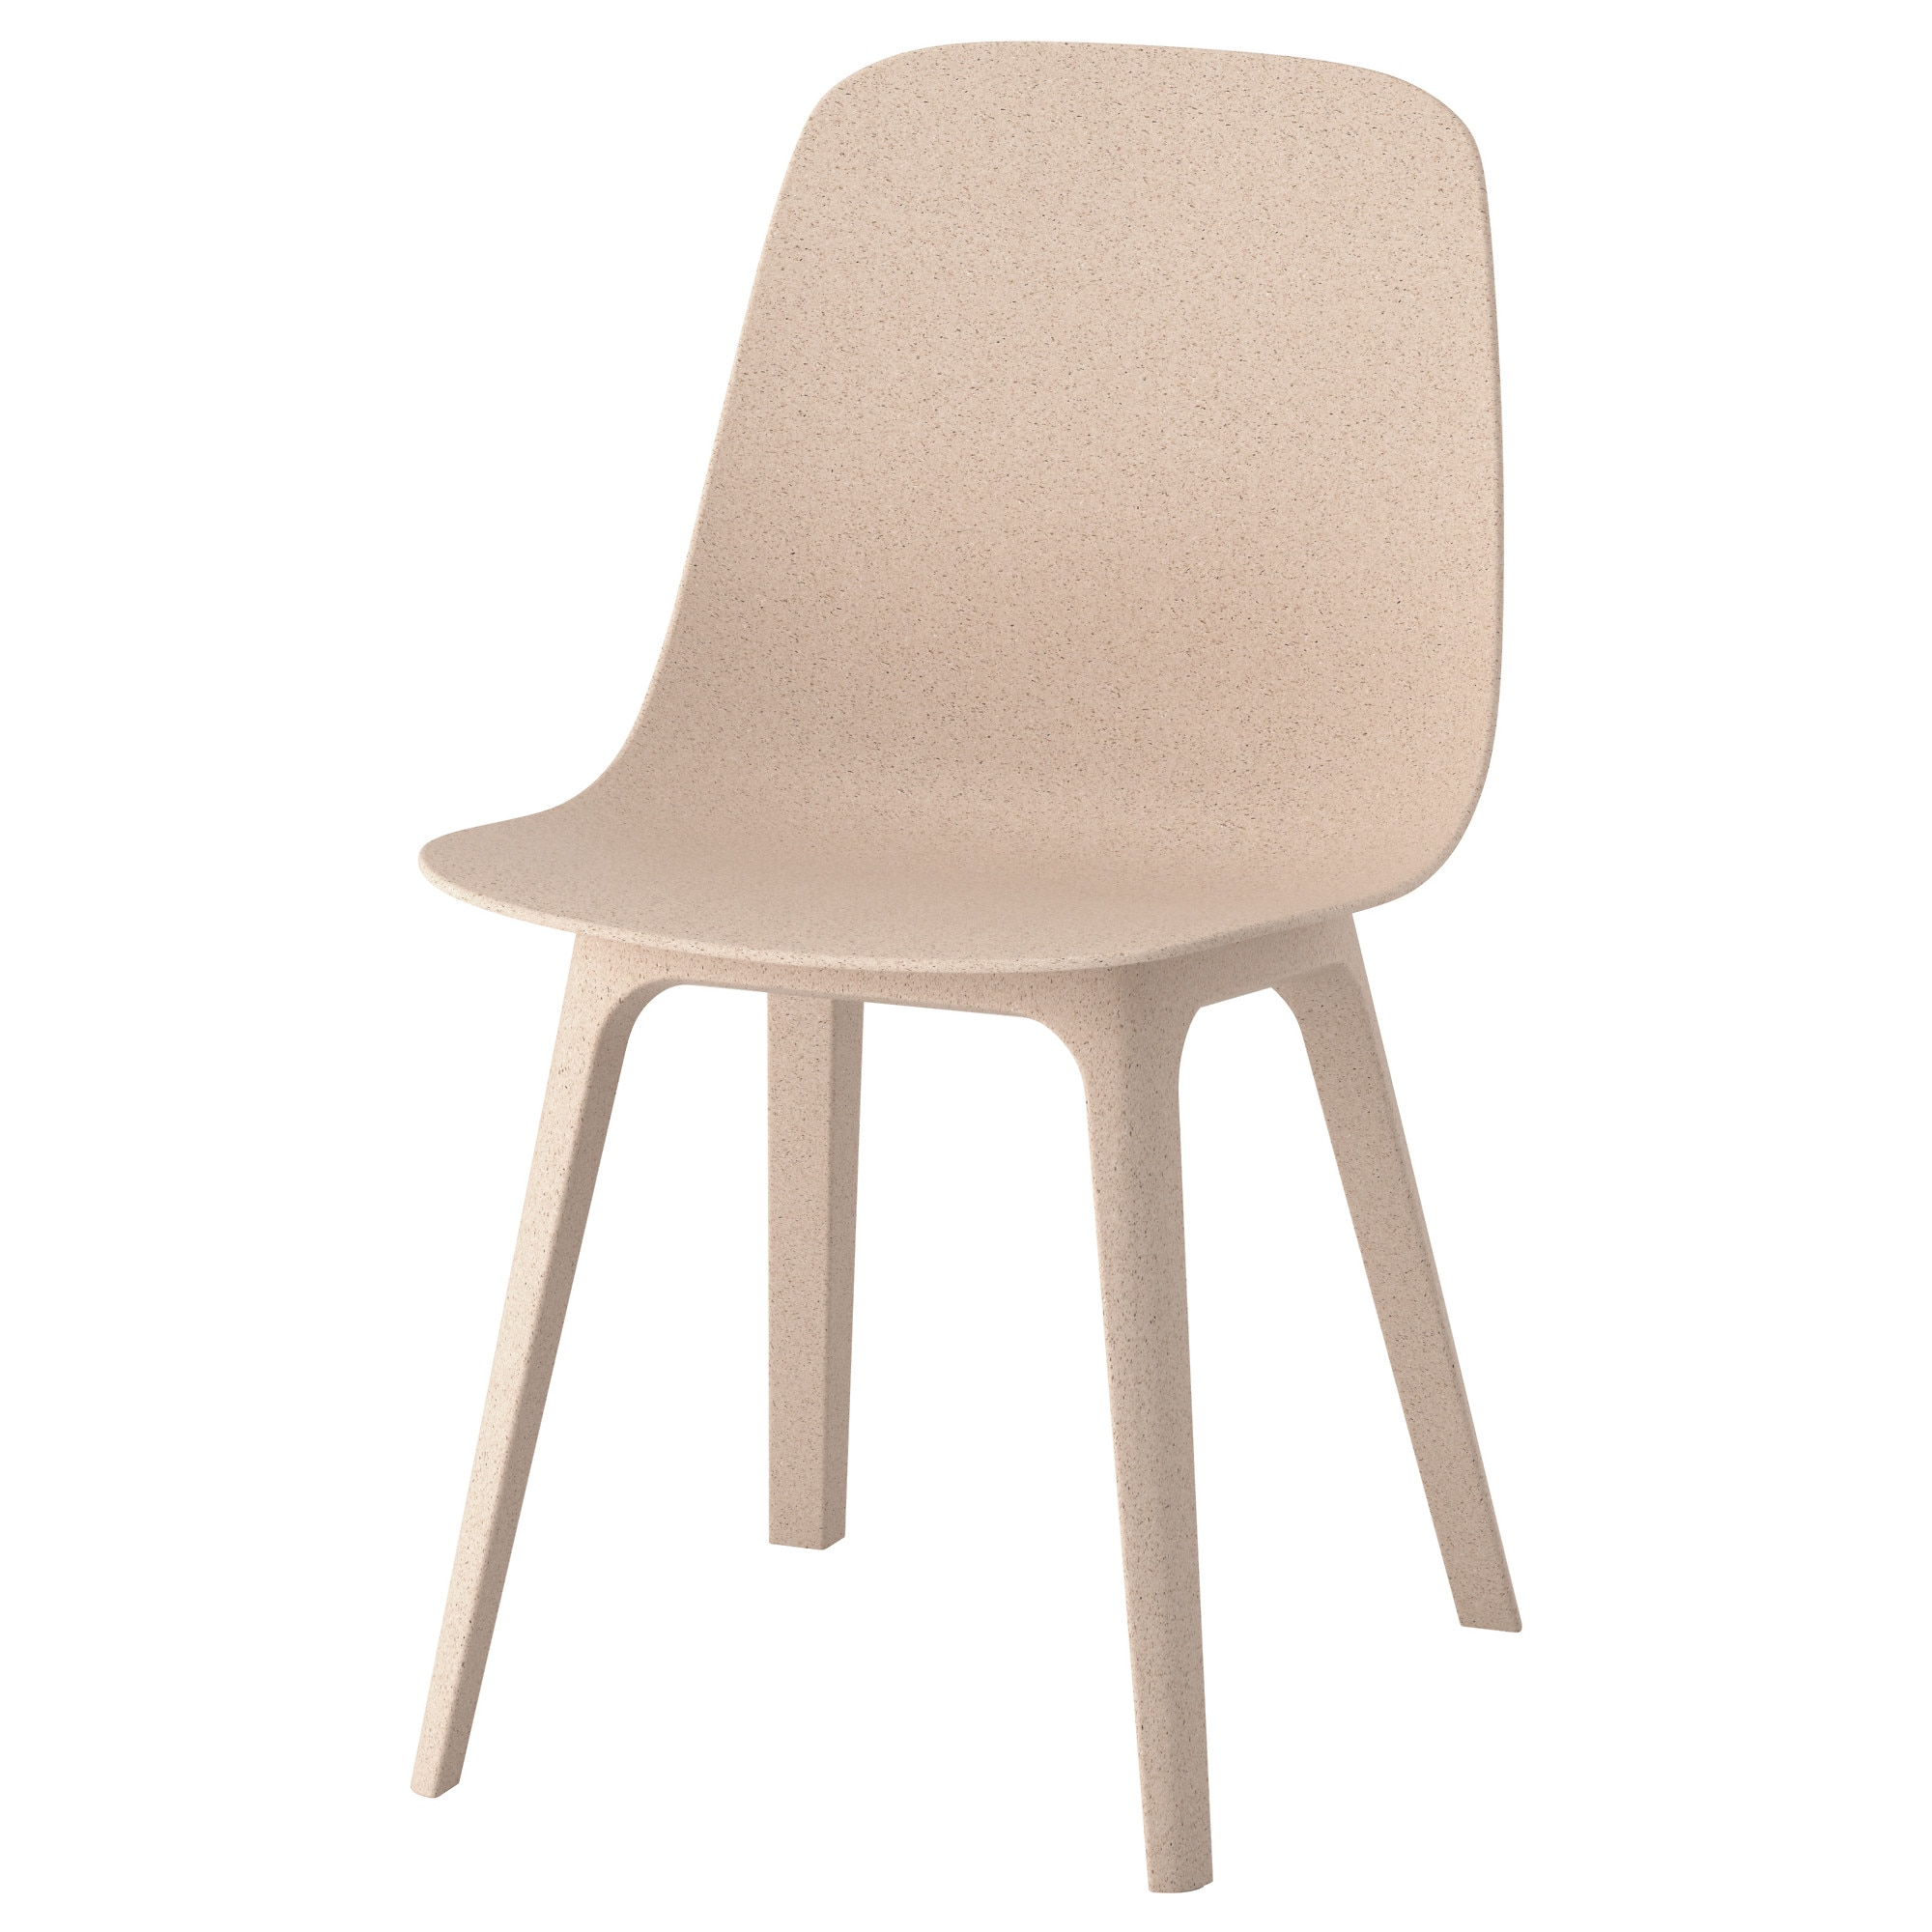 Chaise Ikea Plastique Odger Chaise Blanc Beige